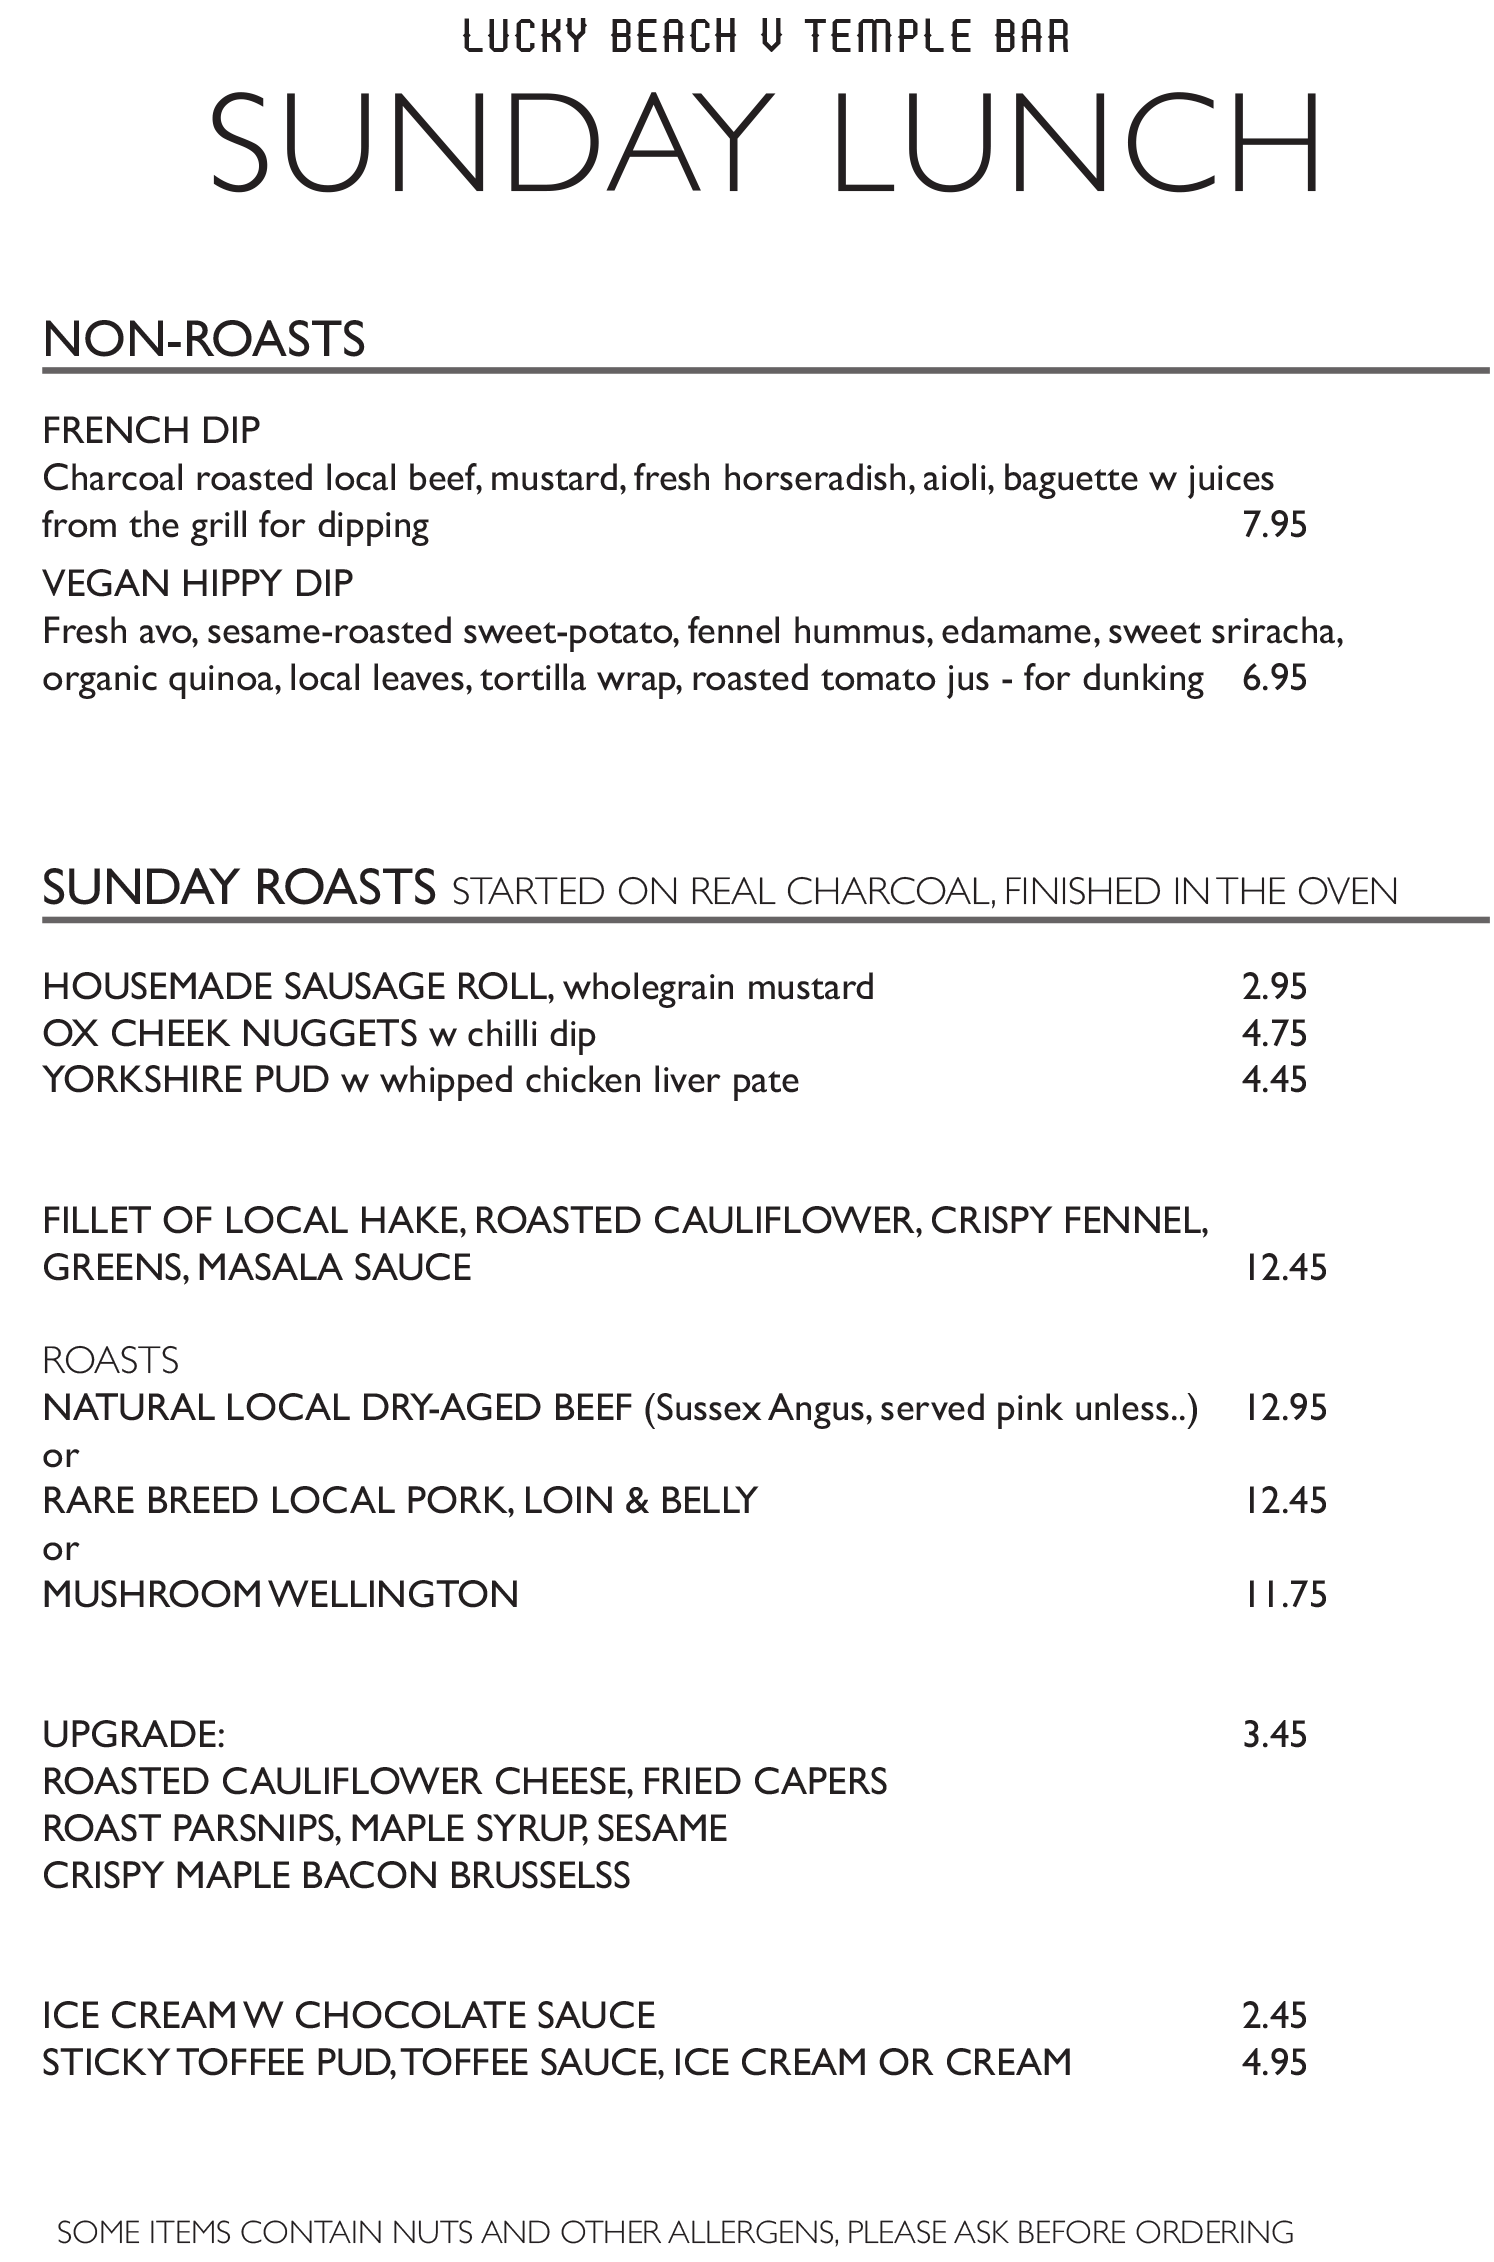 Sunday Menu at The Temple Bar Brighton